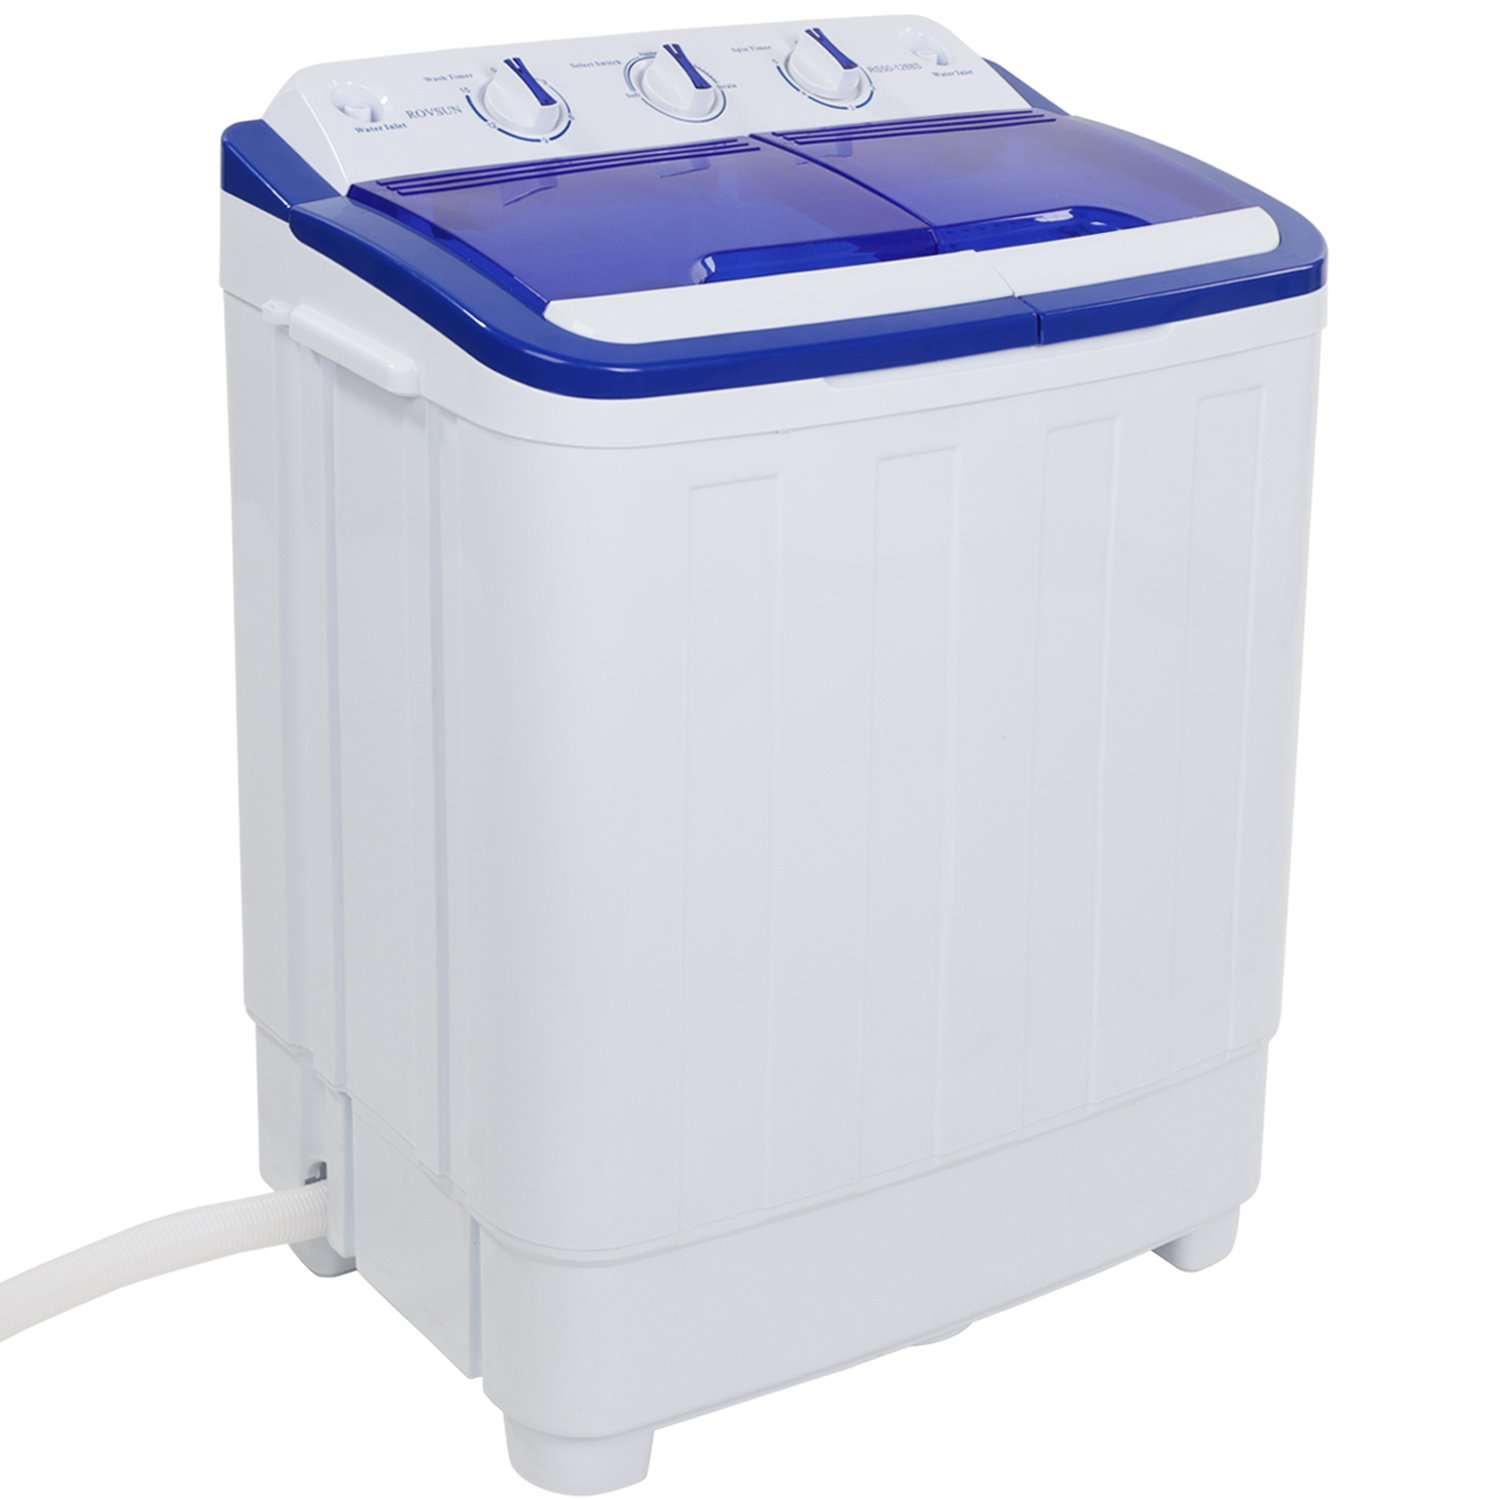 ROVSUN Portable Twin Tub Washing Machine, Electric Compact Washer, 16.6LBS Capacity Energy Saving, Spin Cycle w/Hose, Great for Home RV Camping Dorms Apartments College Rooms